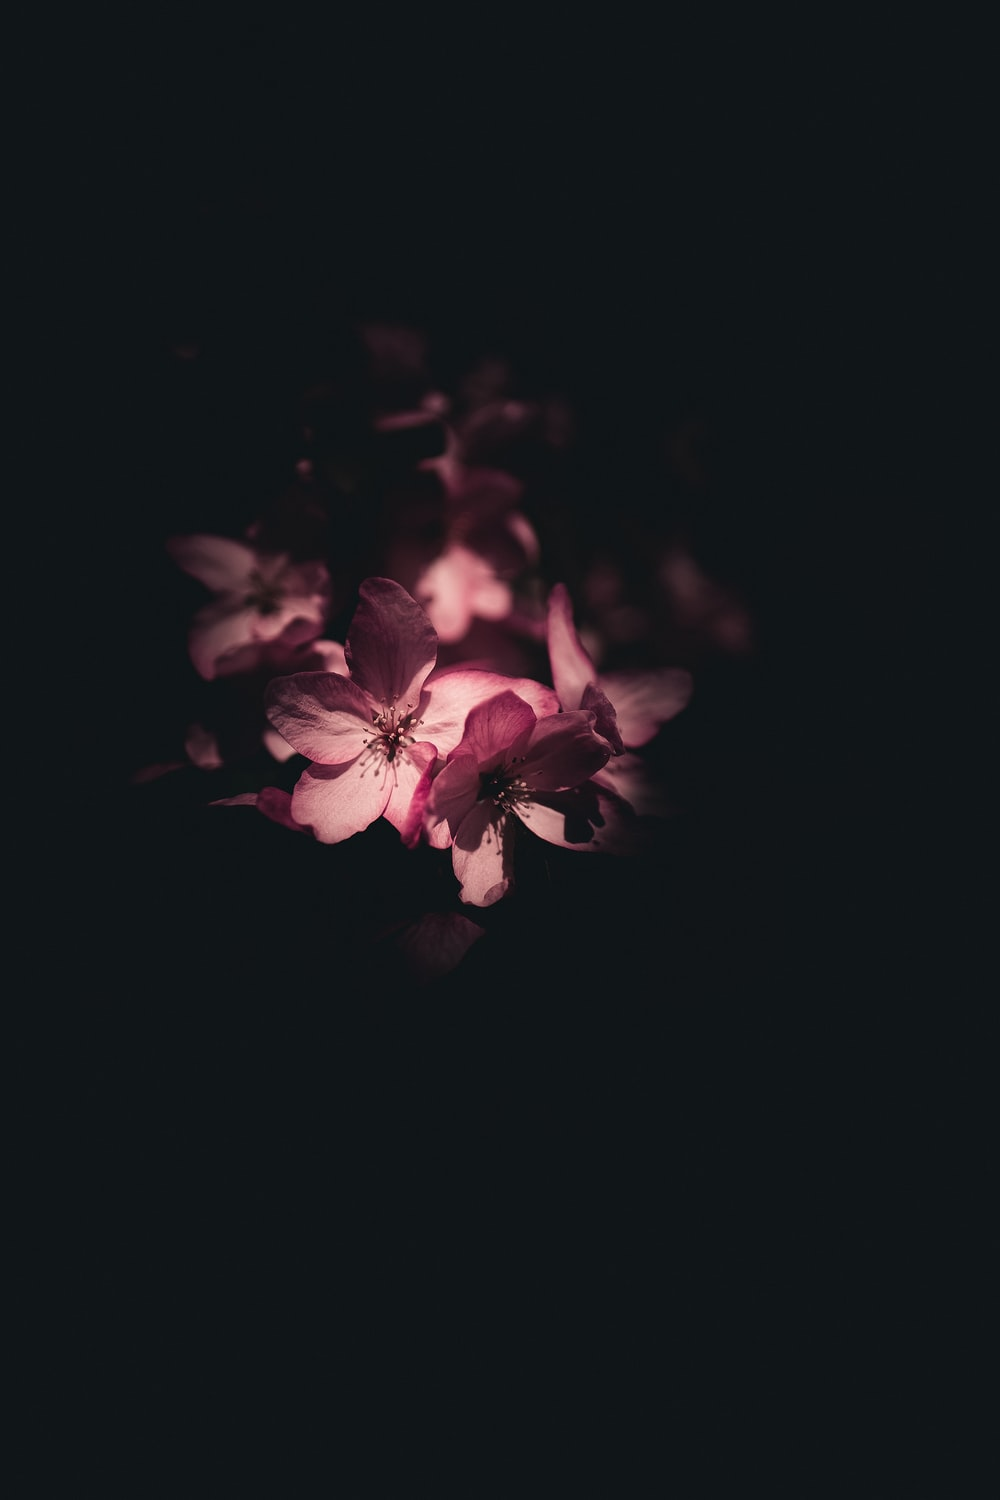 dark photography of pink petaled flower